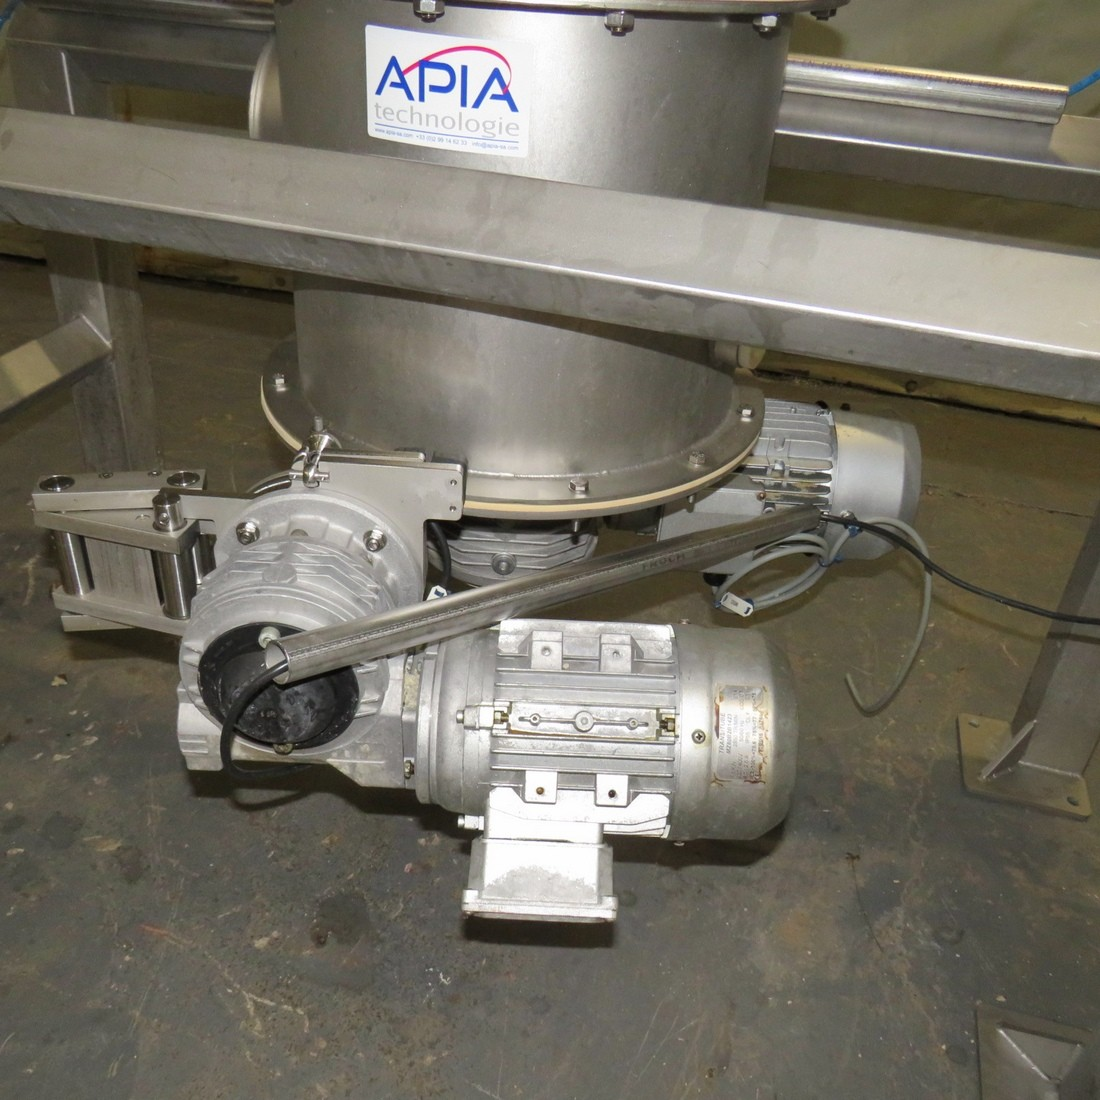 R6ML1394 Stainless steel WAM mixer - WBH 200/30 Type - 300 liters